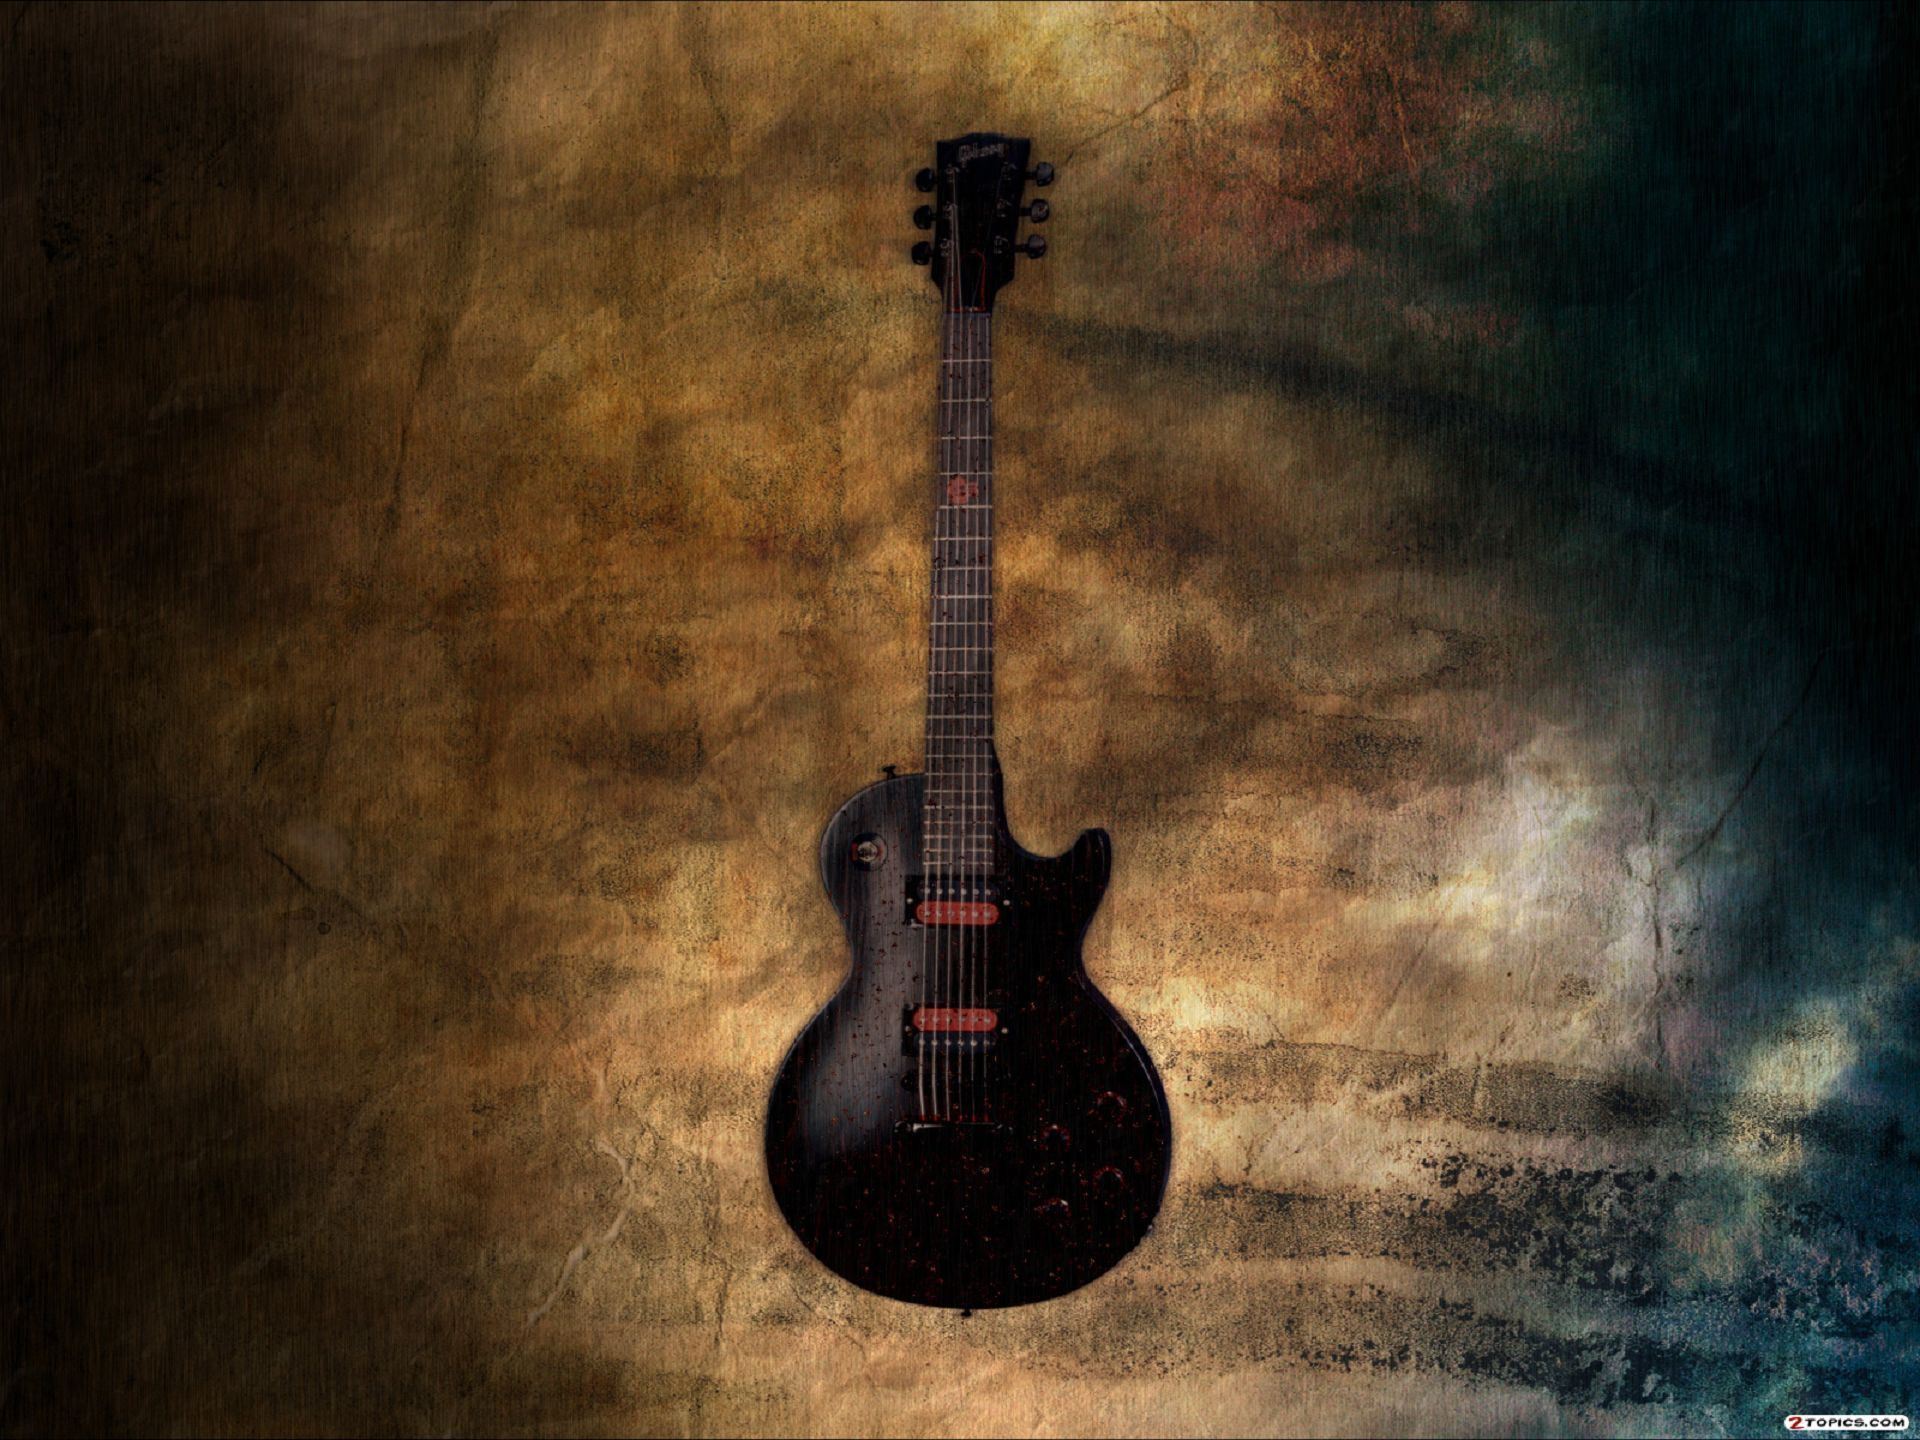 click here to in hd format guitar